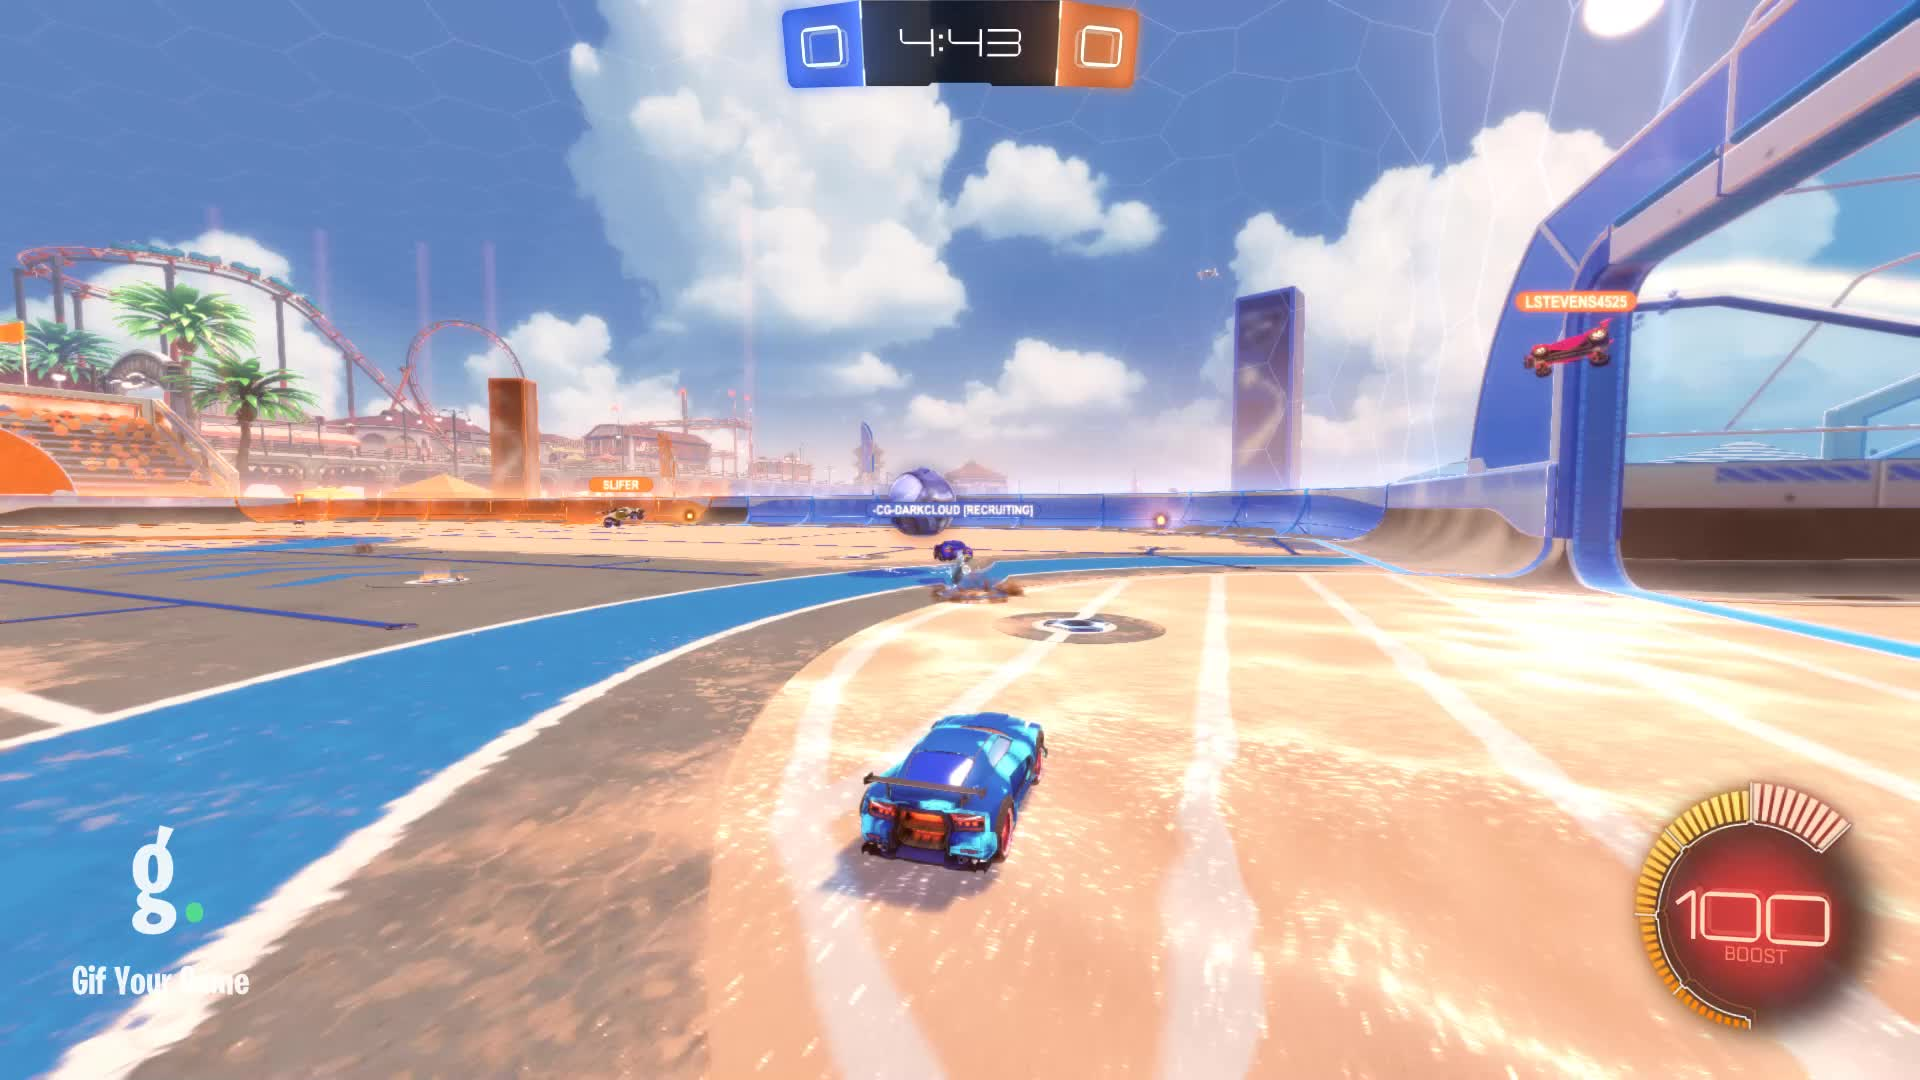 -DI- MisterJW, Gif Your Game, GifYourGame, Goal, Rocket League, RocketLeague, Goal 1: -CG-DarkCloud [Recruiting] GIFs